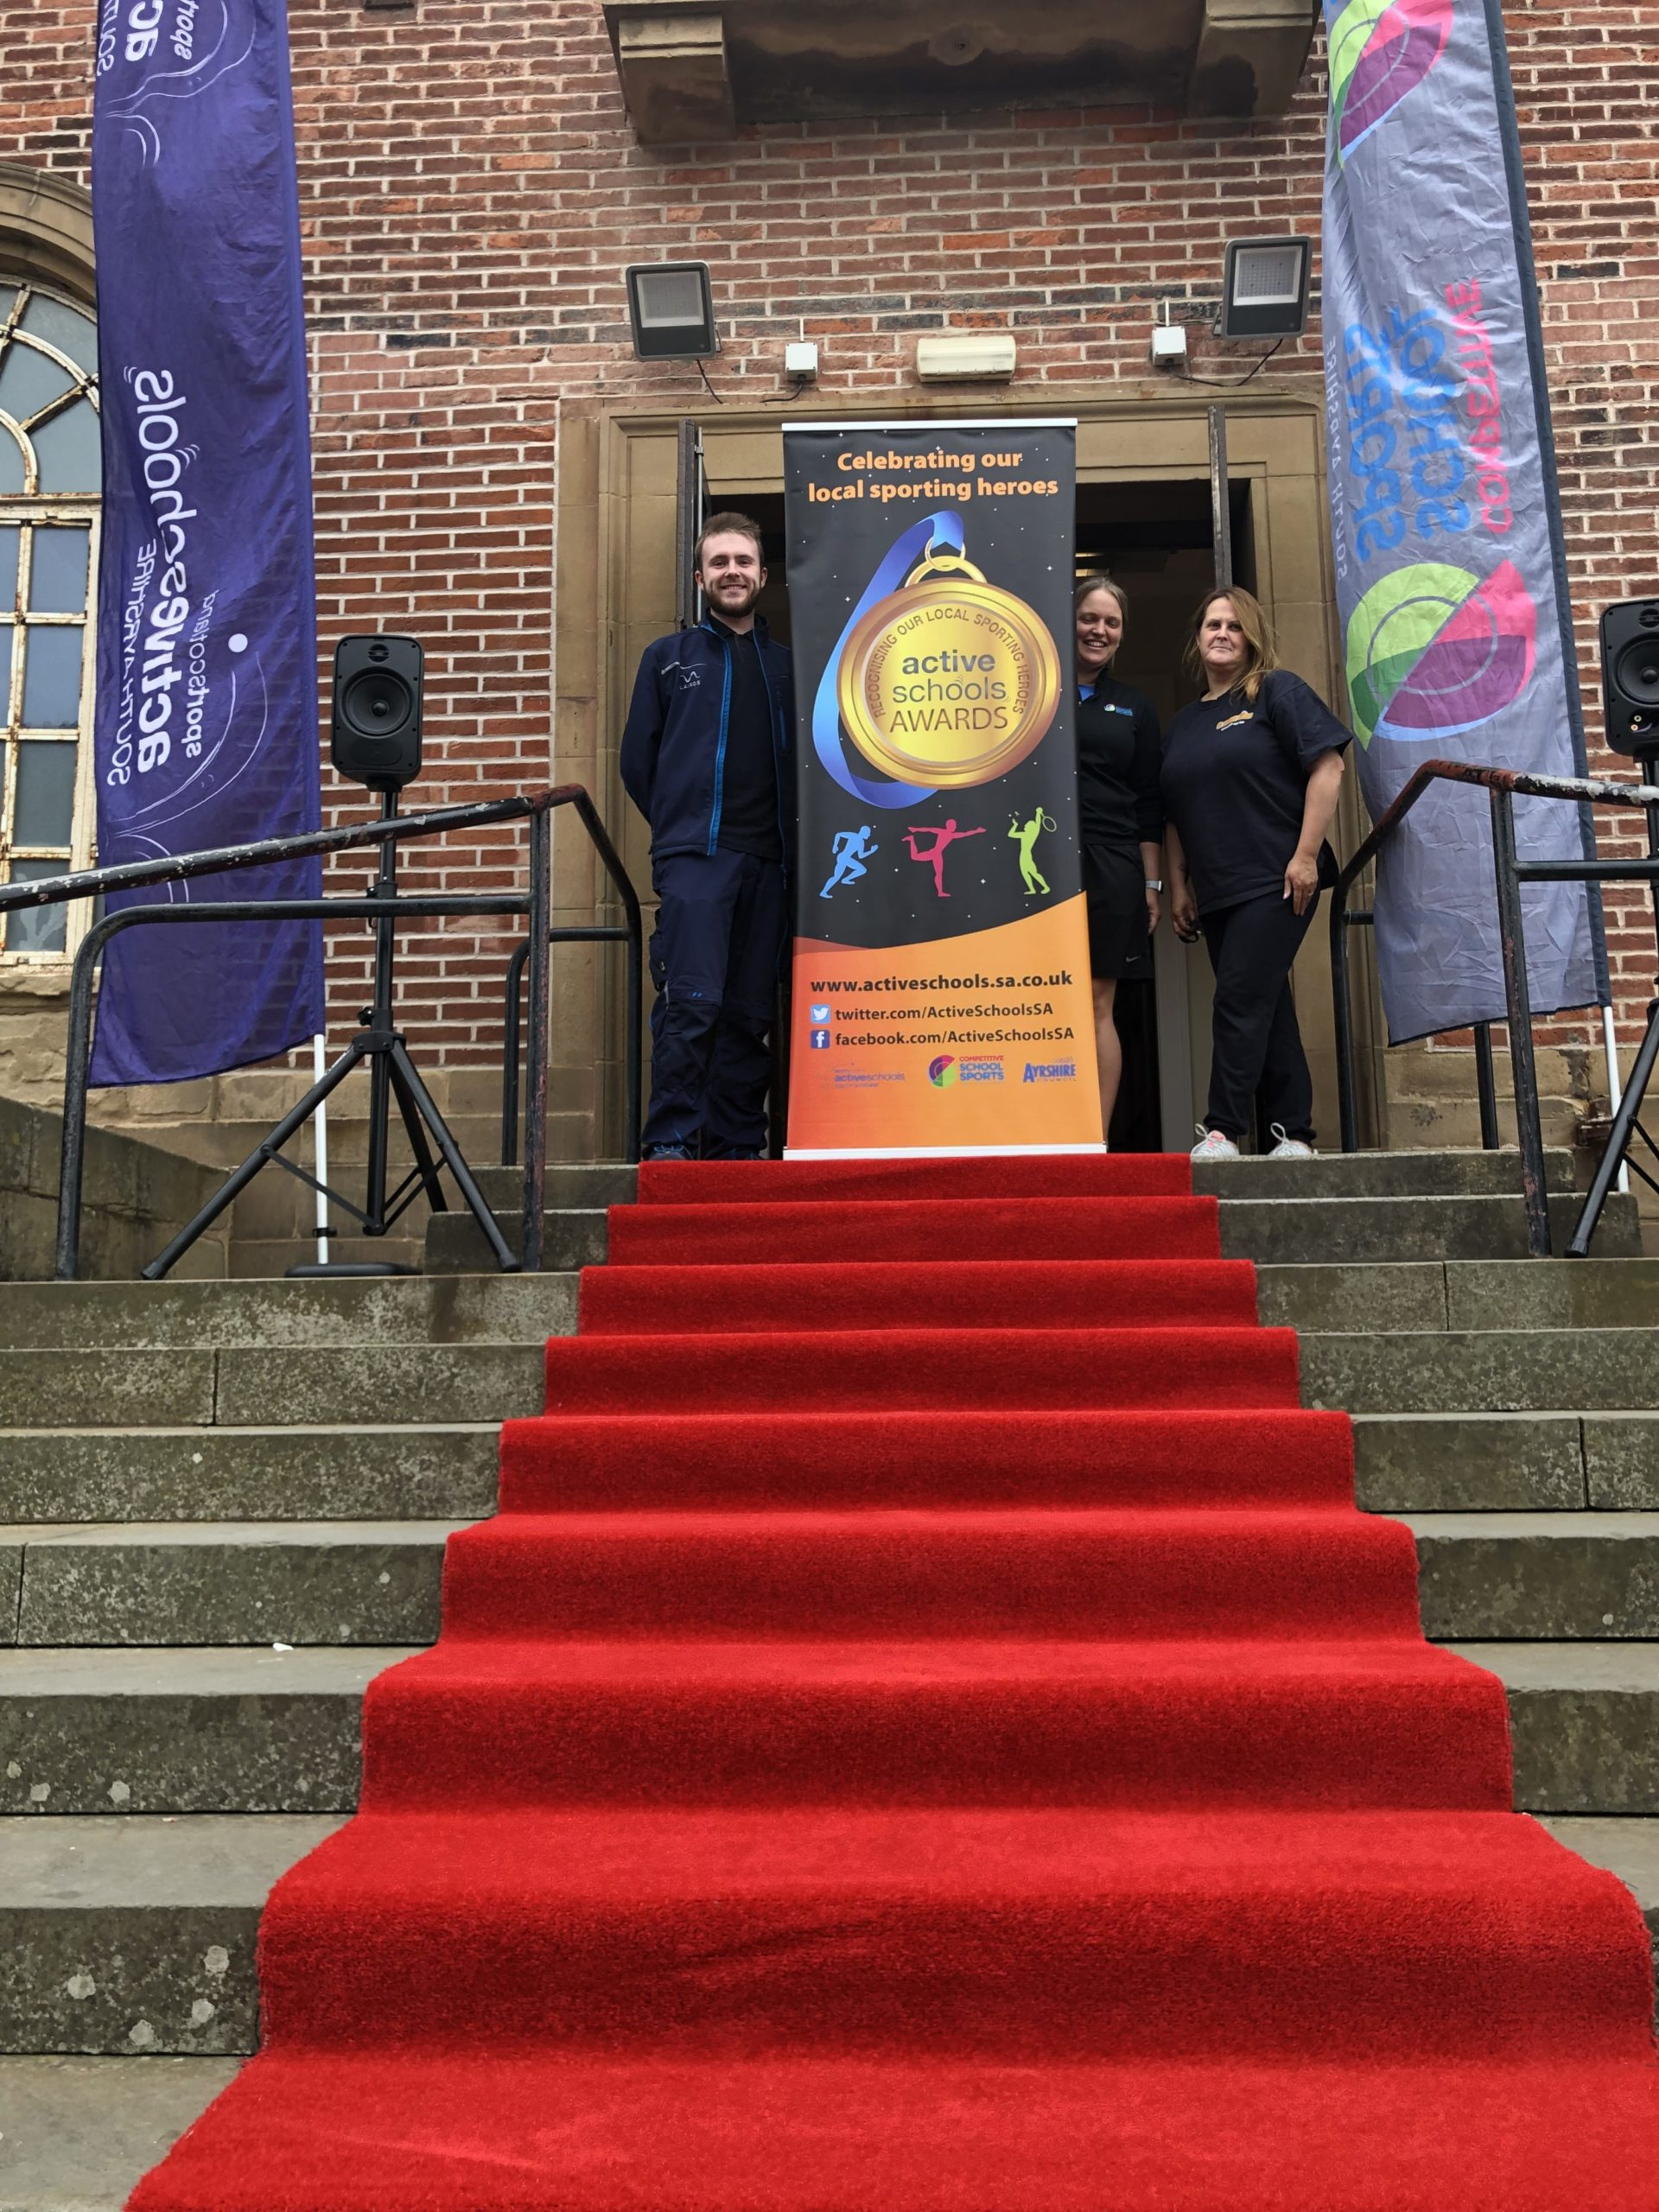 ayrshire active schools kids awards the red carpet